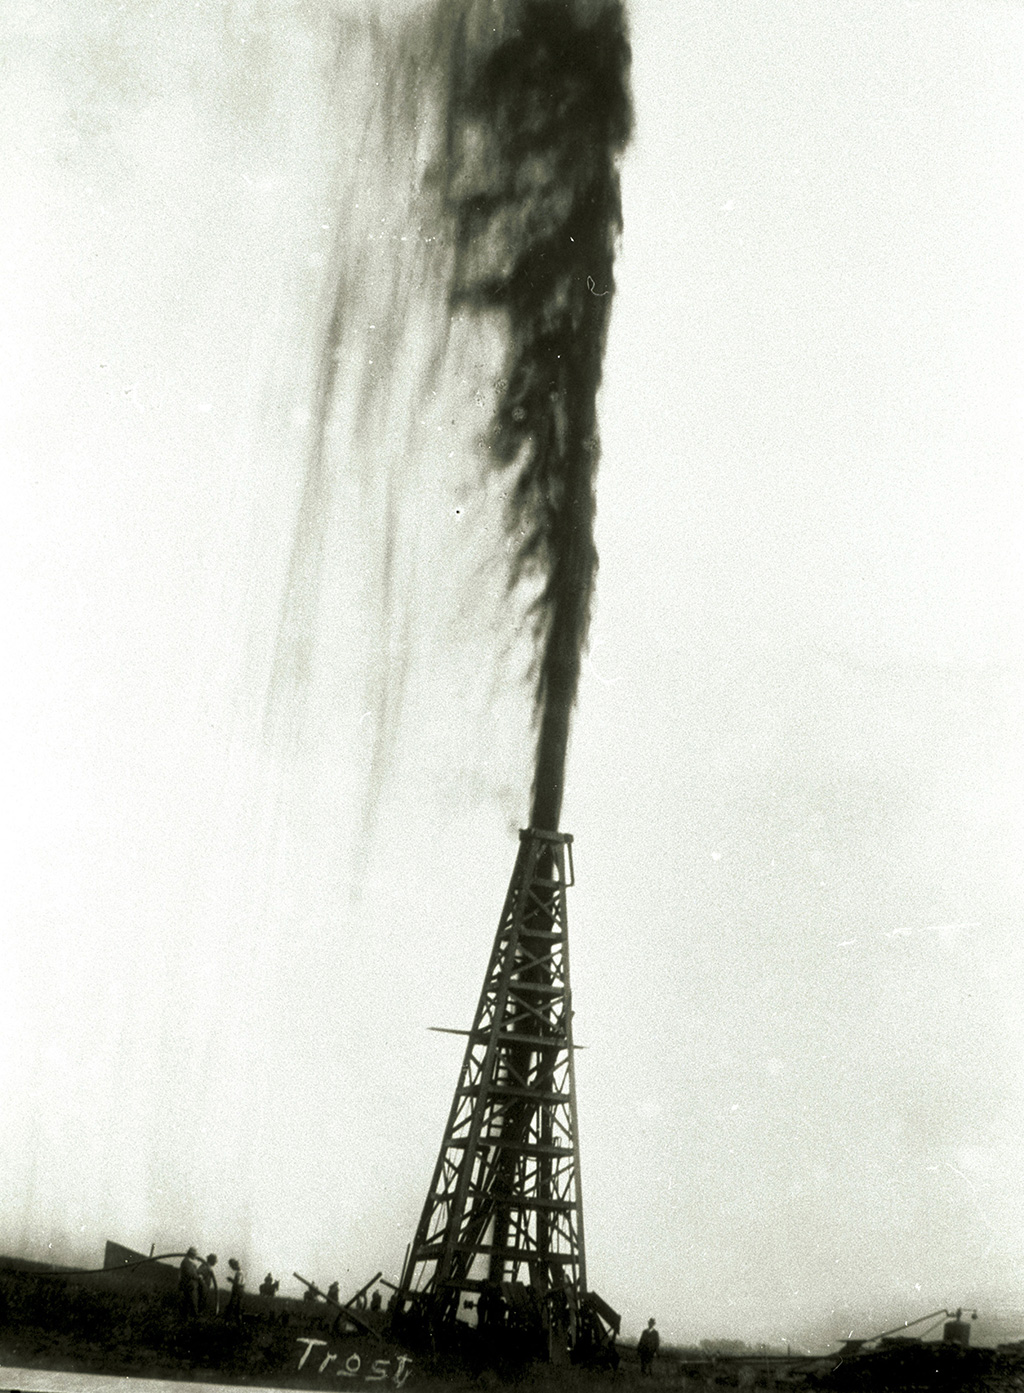 Die sogenannte Lucas-Fontäne in Spindletop, 1901, der Beginn des ersten großen Ölbooms in den USA © Tyrell Historical Library (Beaumont, Texas) the Gilbert Papers, MS 159]